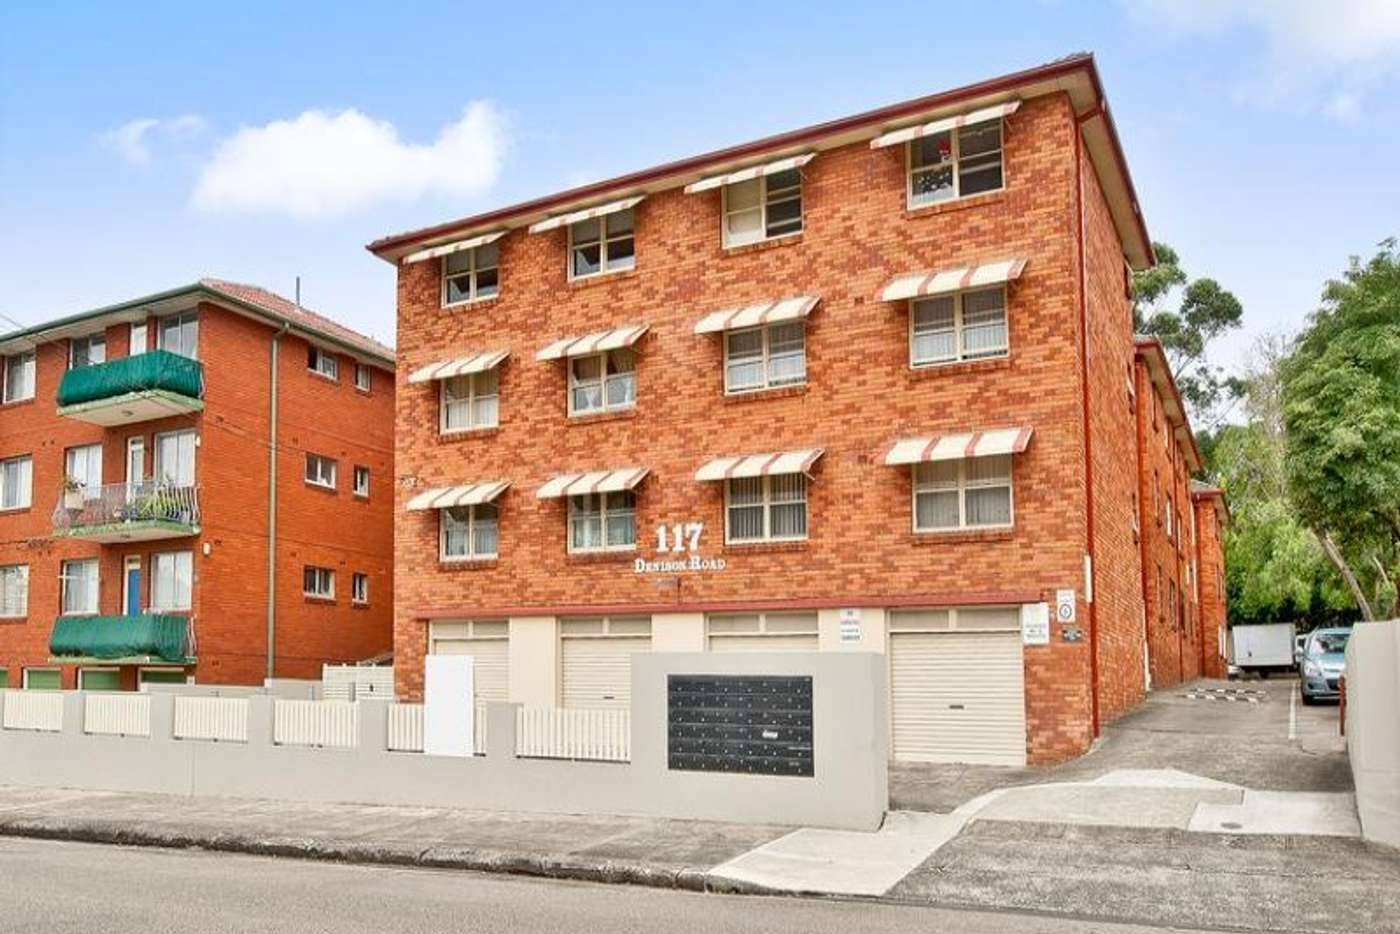 Main view of Homely unit listing, 16/117 Denison Road, Dulwich Hill NSW 2203